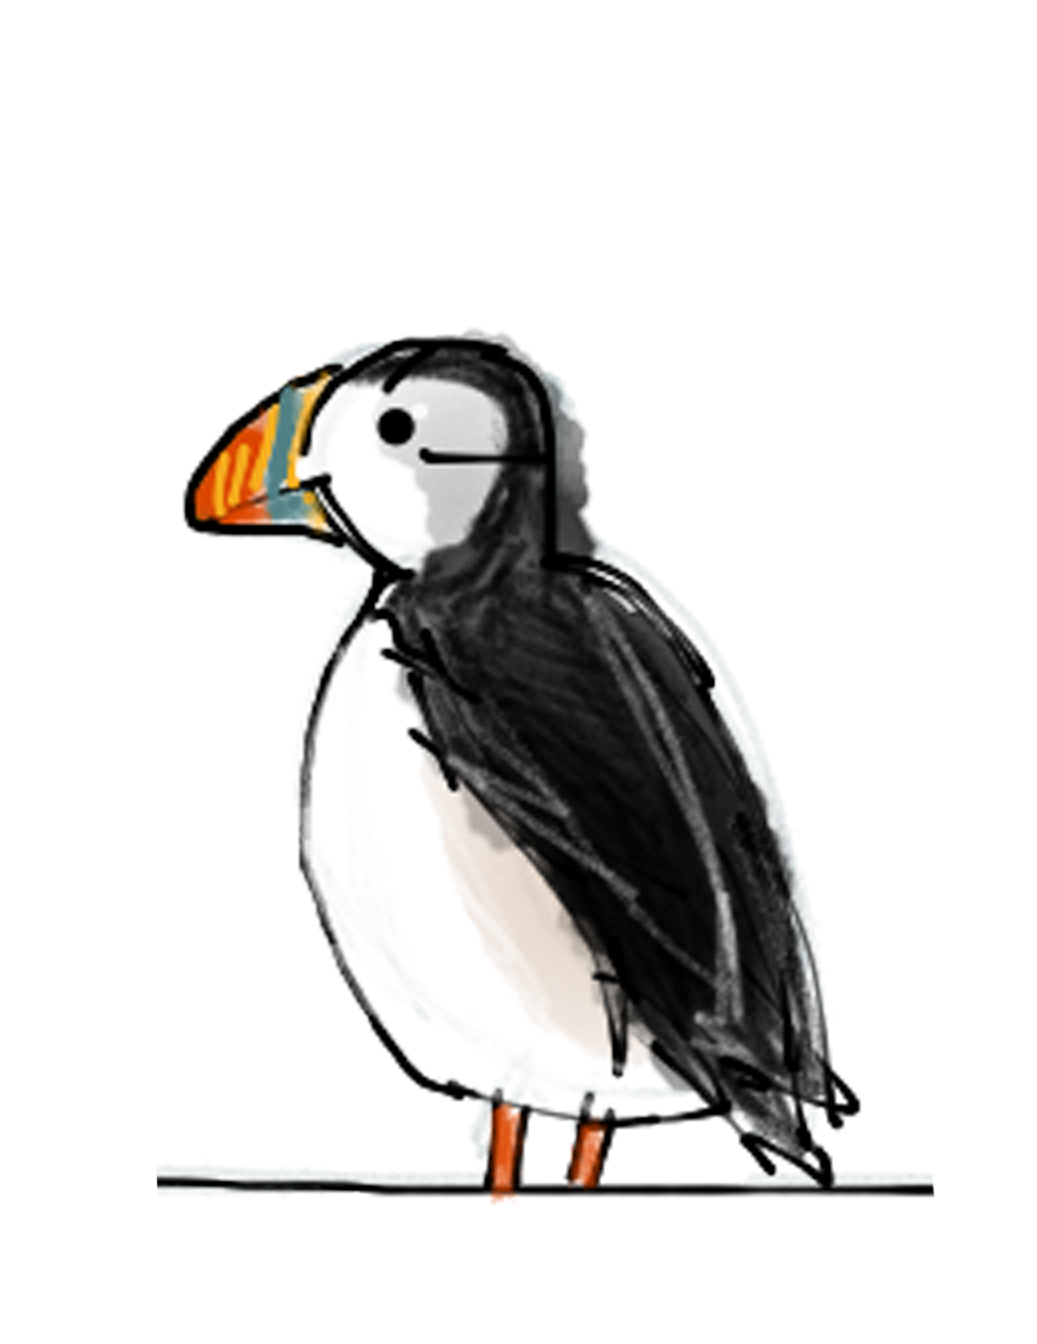 100 crazy puffin facts iceland defrosted